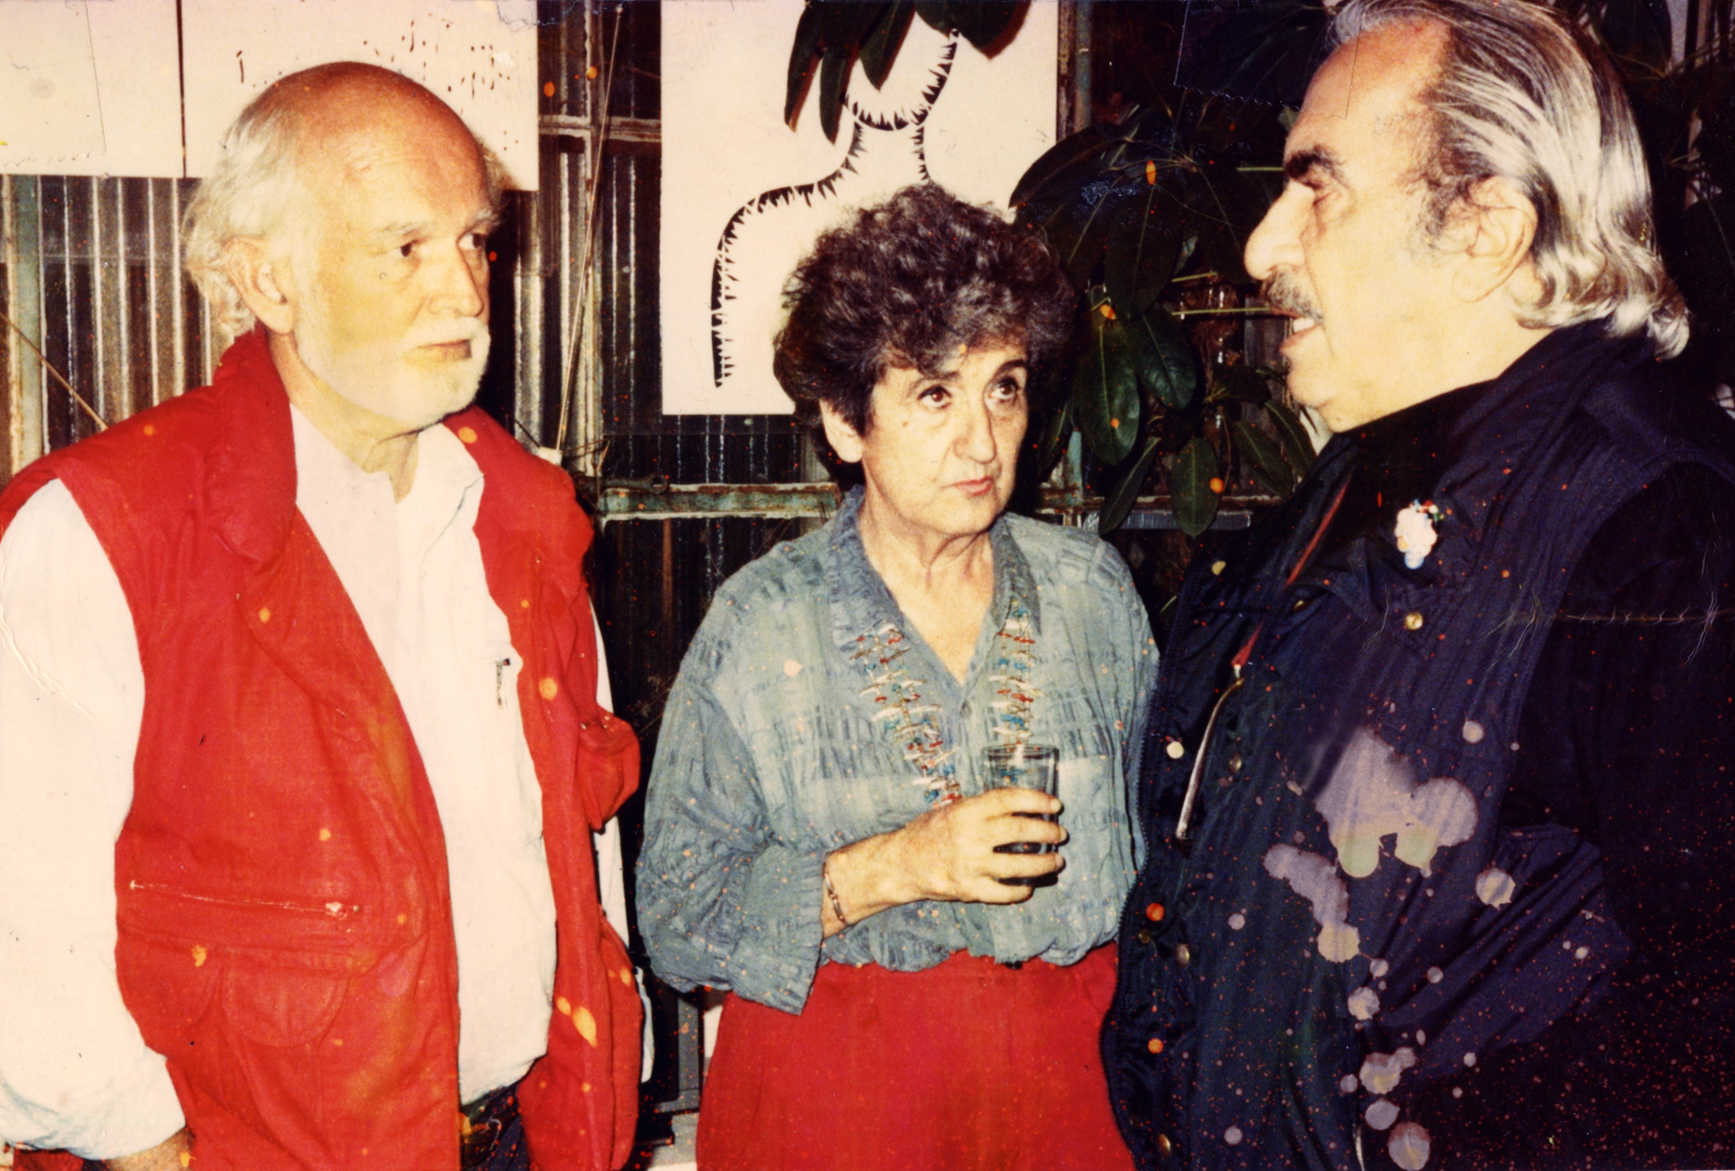 Artists Robert Arneson and Peter Voulkos pictured with Ruth Braunstein, c. 1980